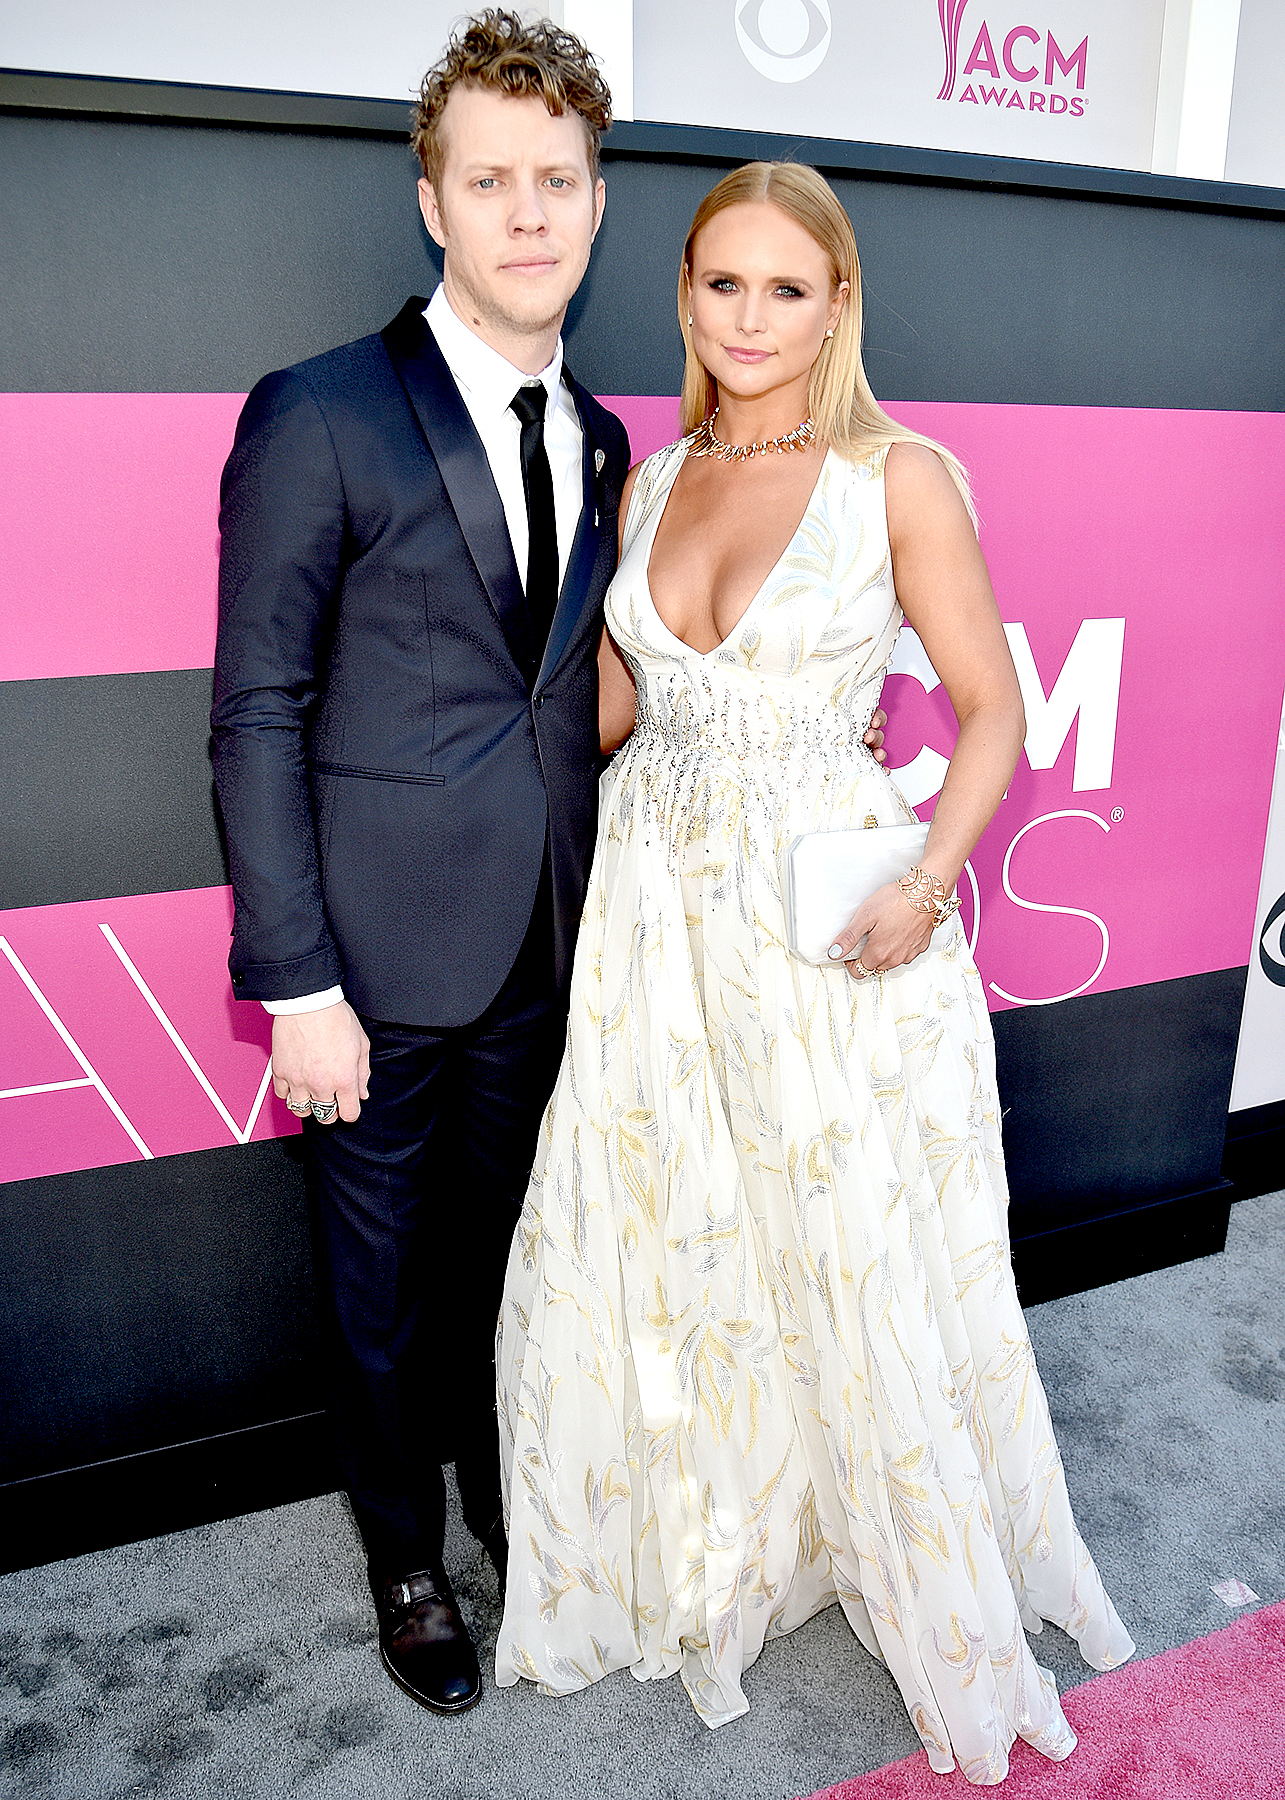 Anderson East and Miranda Lambert attend the 52nd Academy of Country Music Awards at Toshiba Plaza on April 2, 2017 in Las Vegas, Nevada.